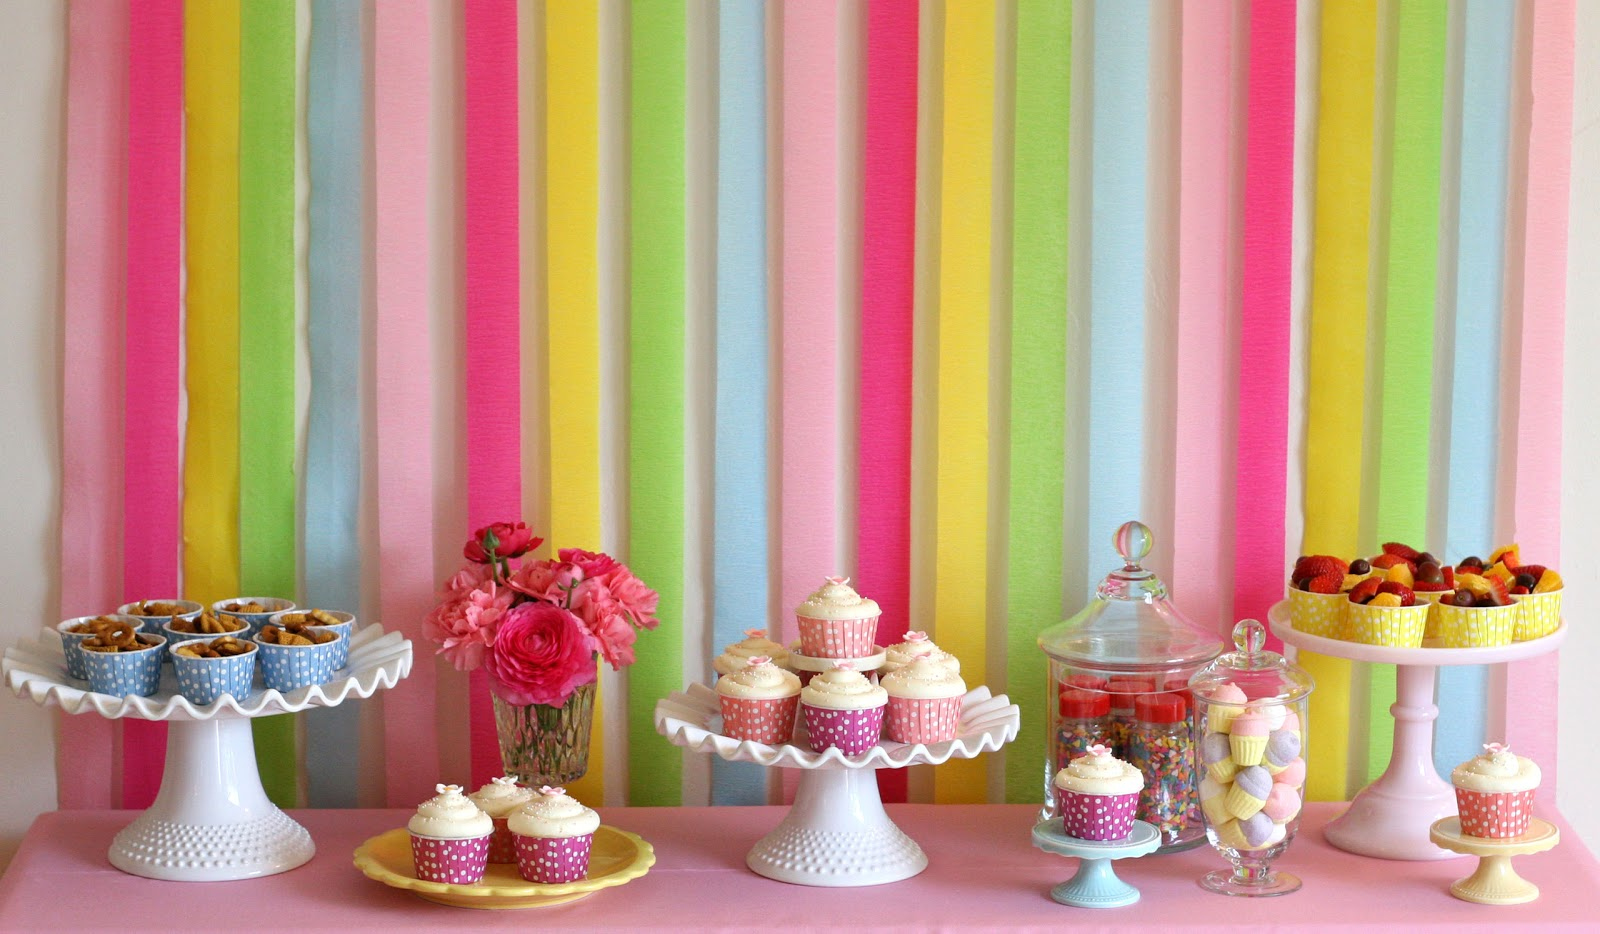 background decoration for birthday party at home ; rainbow+birthday+food+and+desserts